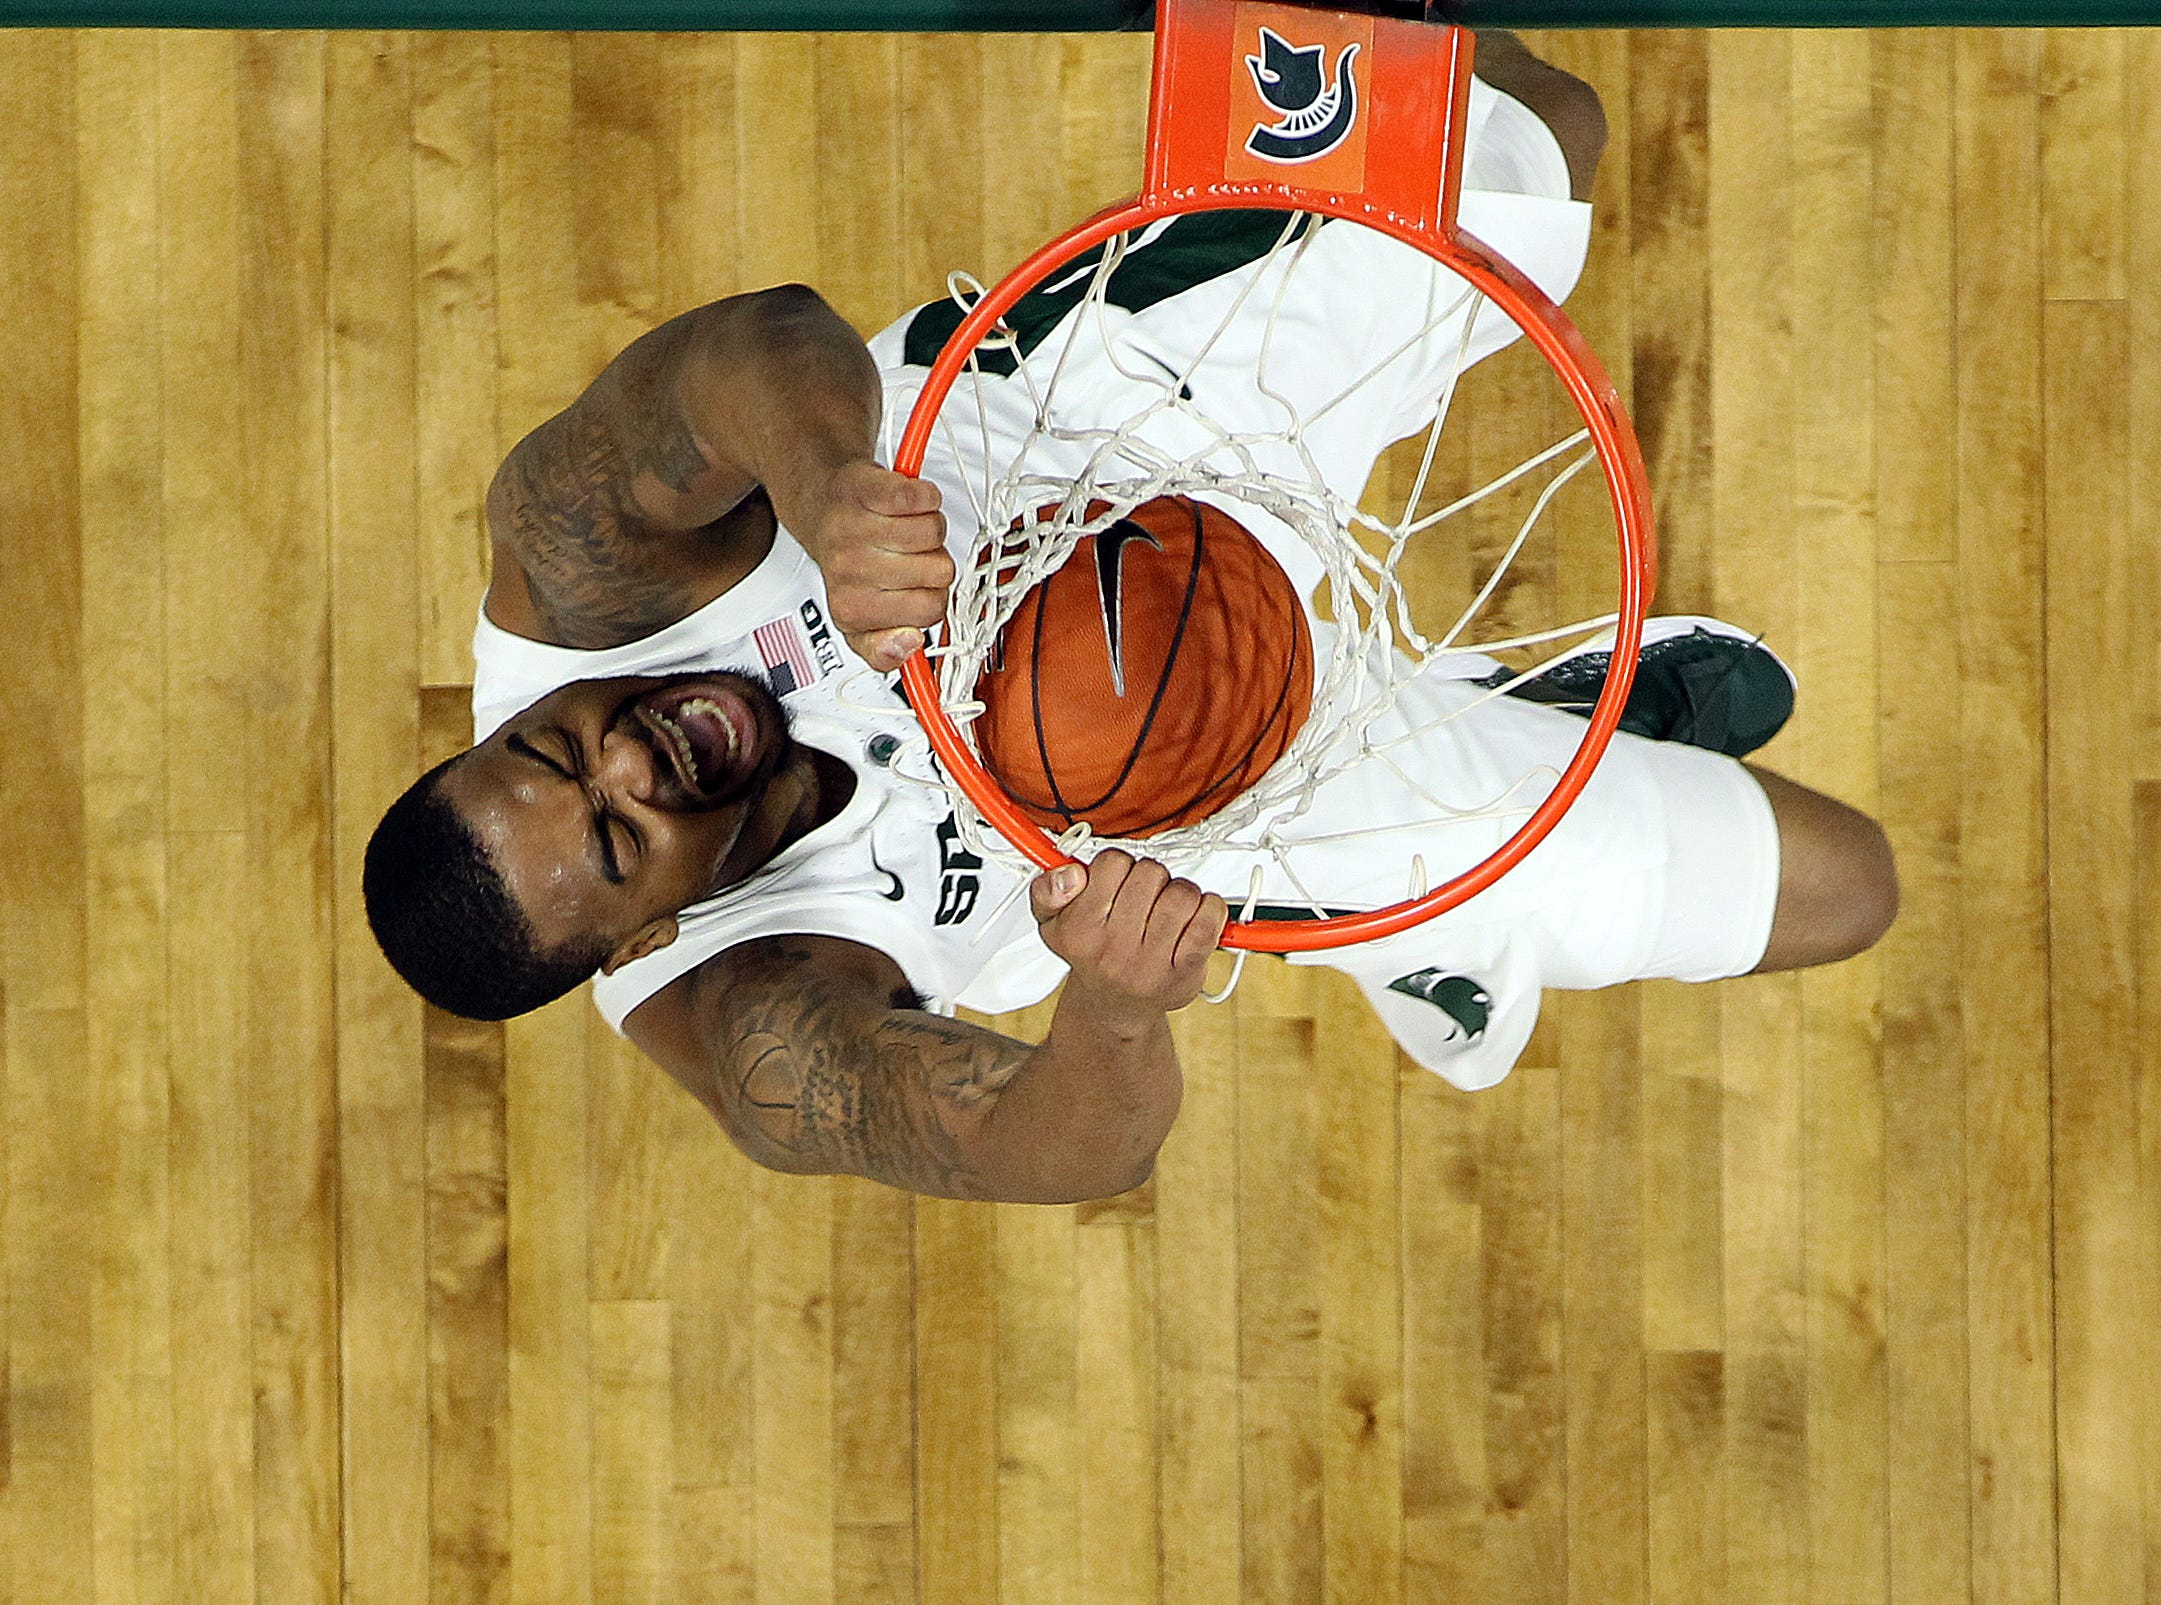 Jan. 2: Michigan State Spartans forward Nick Ward (44) dunks the ball during the first half of a game against the Northwestern Wildcats at the Breslin Center.